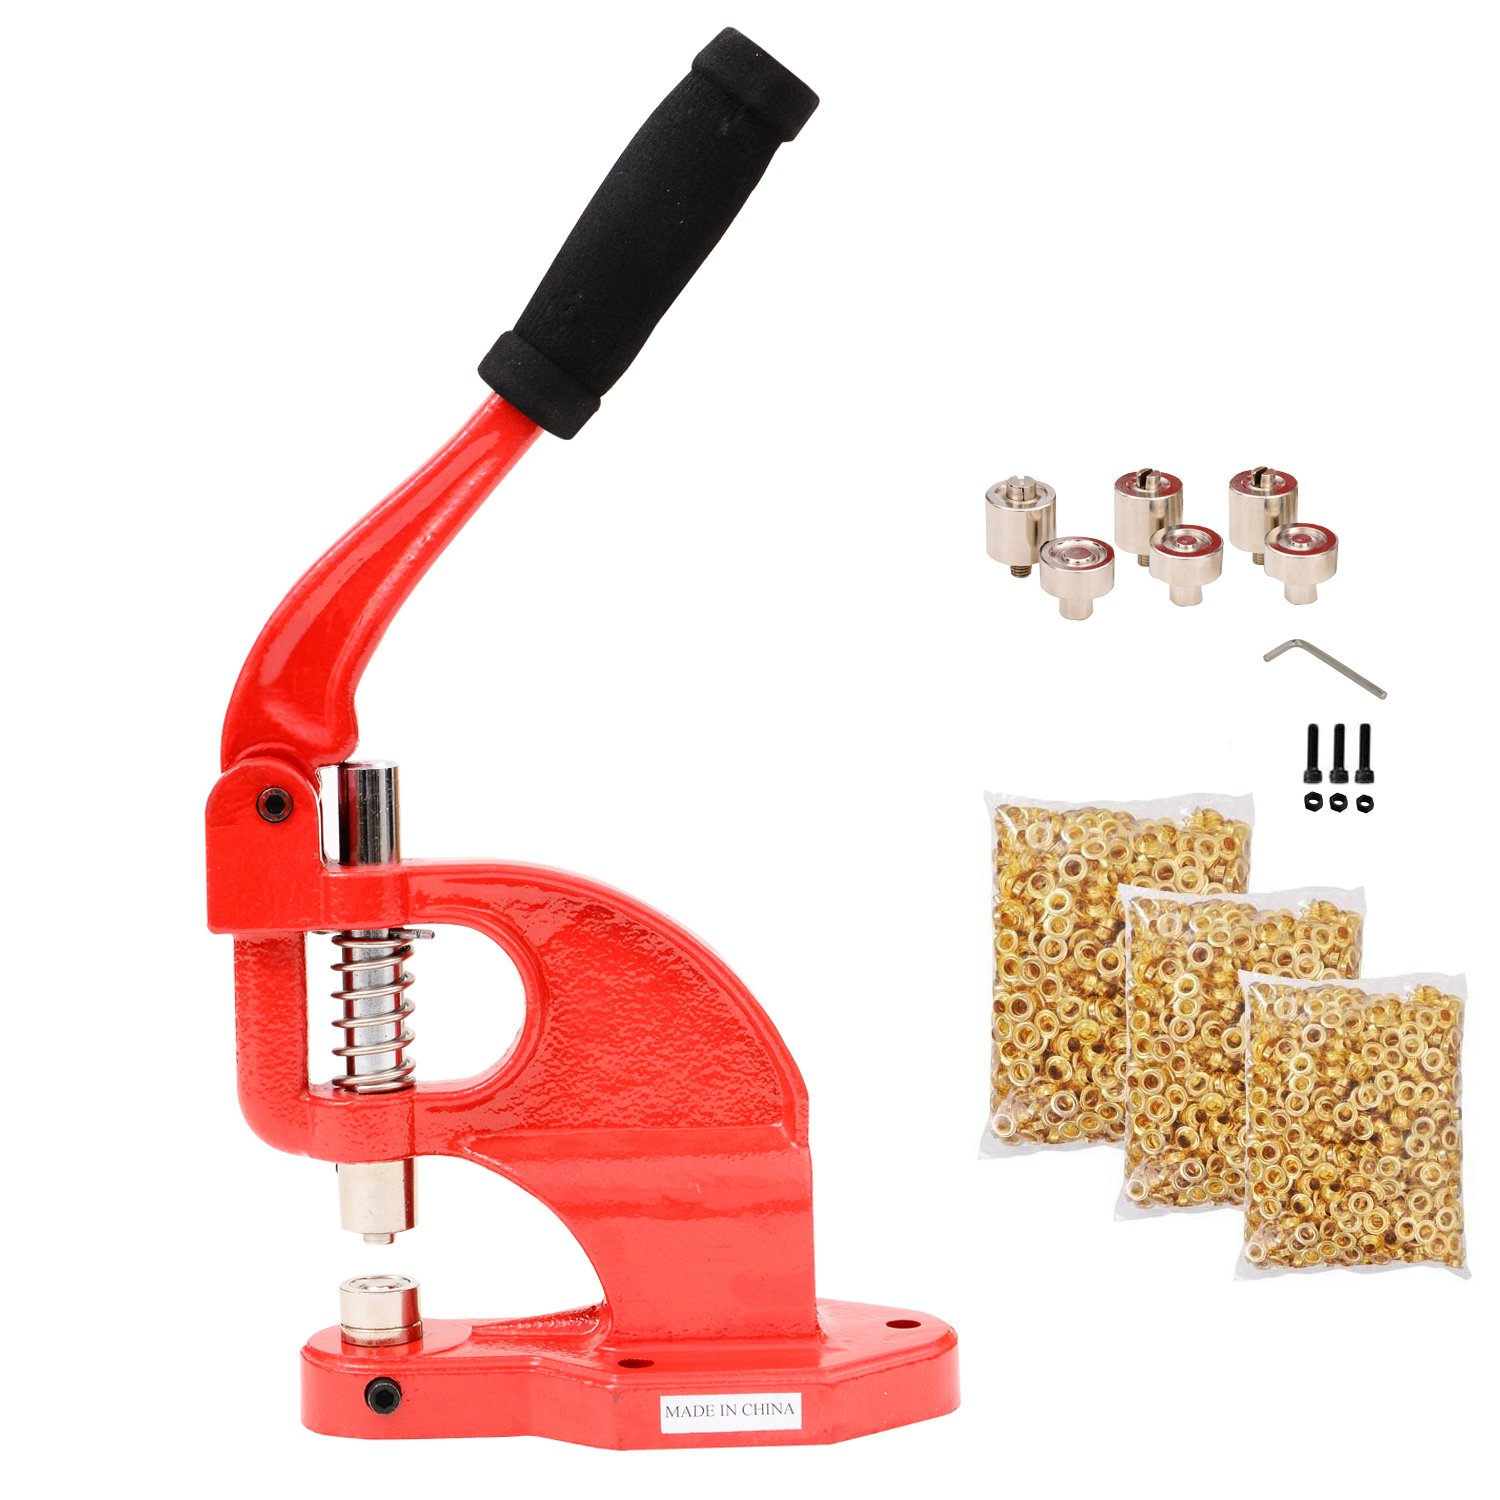 Tenive Manual Heavy Duty Hand Press Grommet Machine– Hand Eyelets Hole Punch Tool with 3 Die Sets - #0 #2 #4 - 900 Grommets Red - A Perfect Hand Press Grommet Machine for Semi-professional and Home